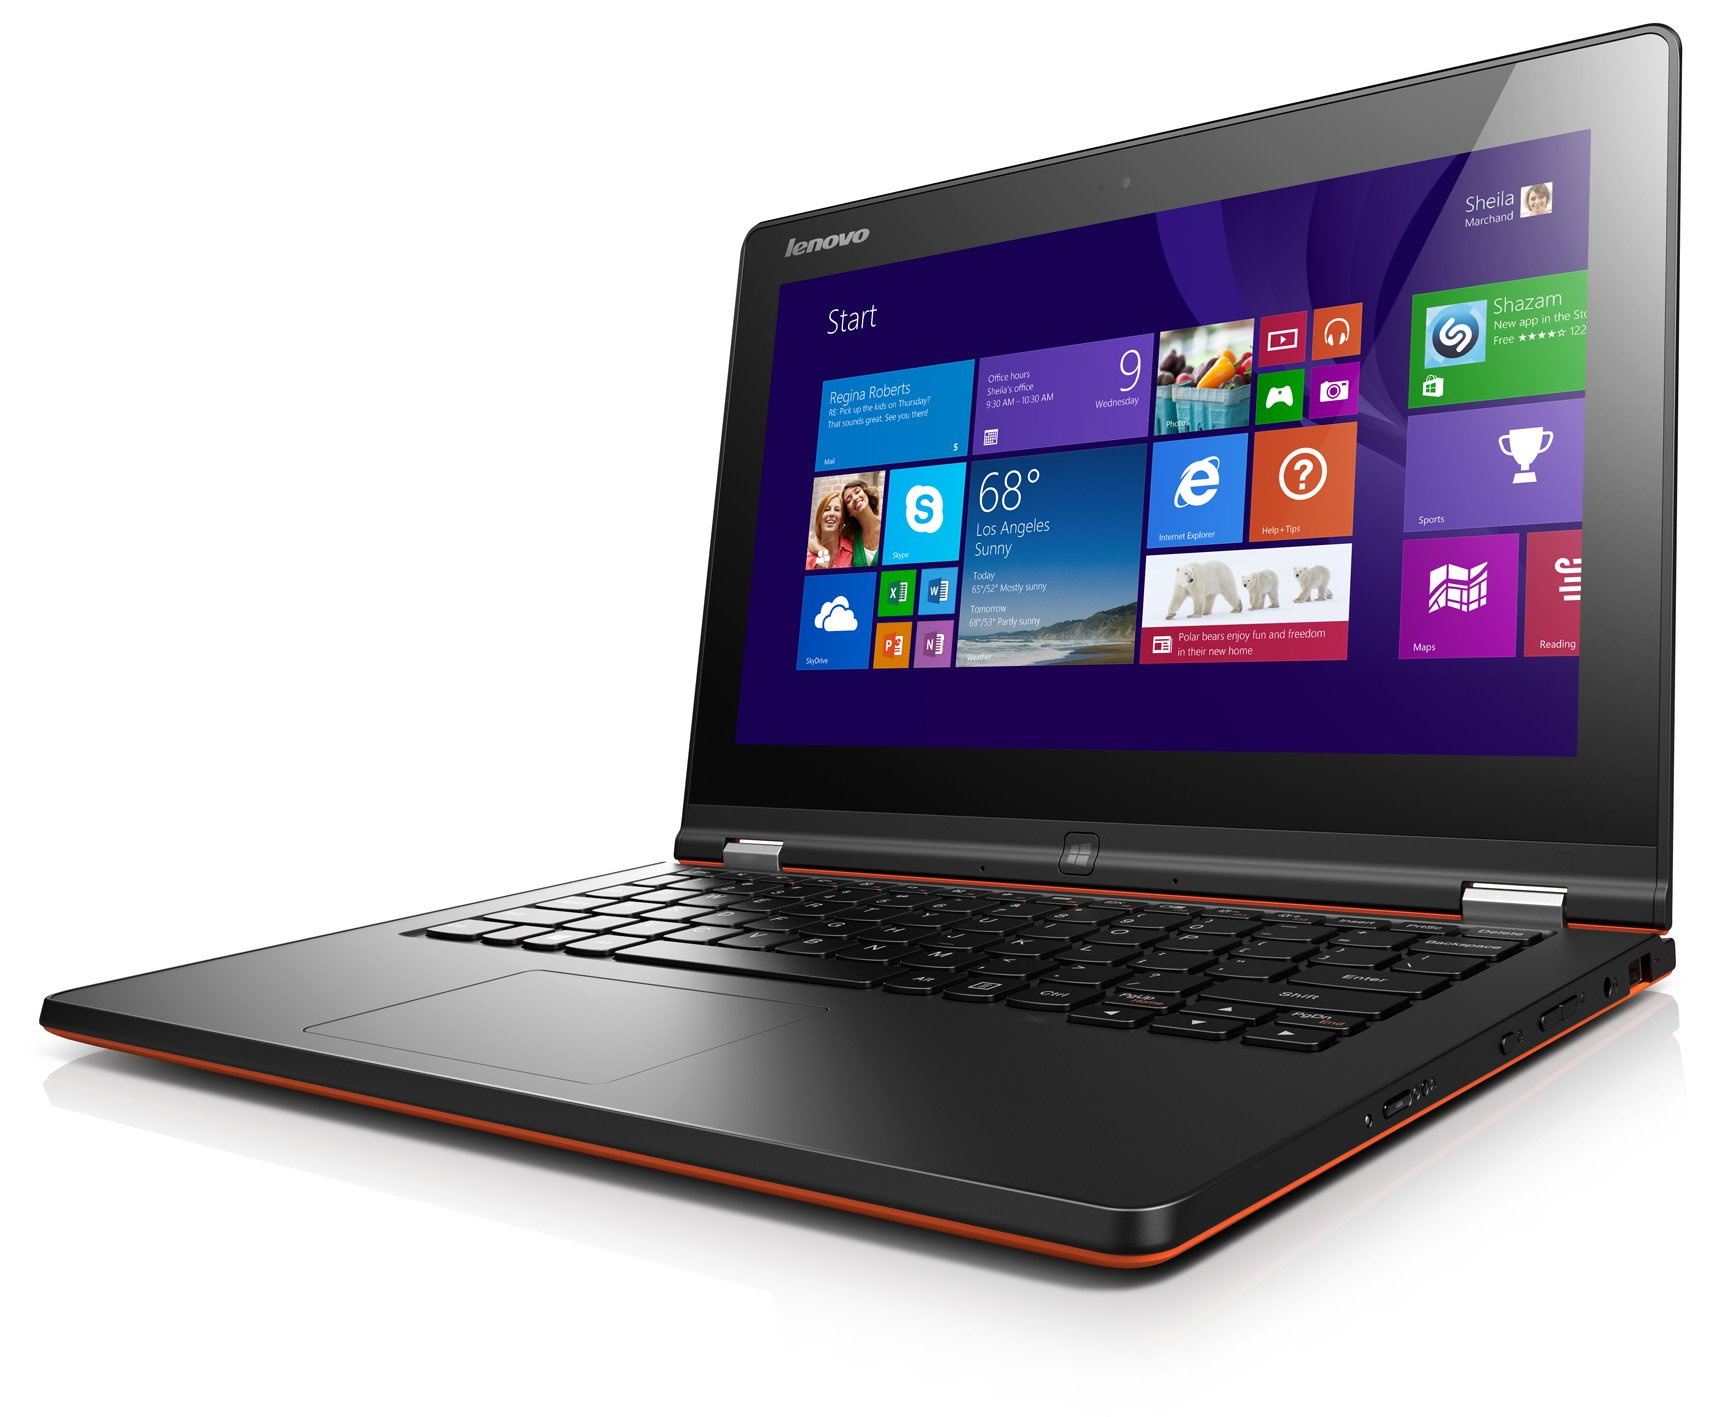 Lenovo-Yoga-2-11-Orange_Standard